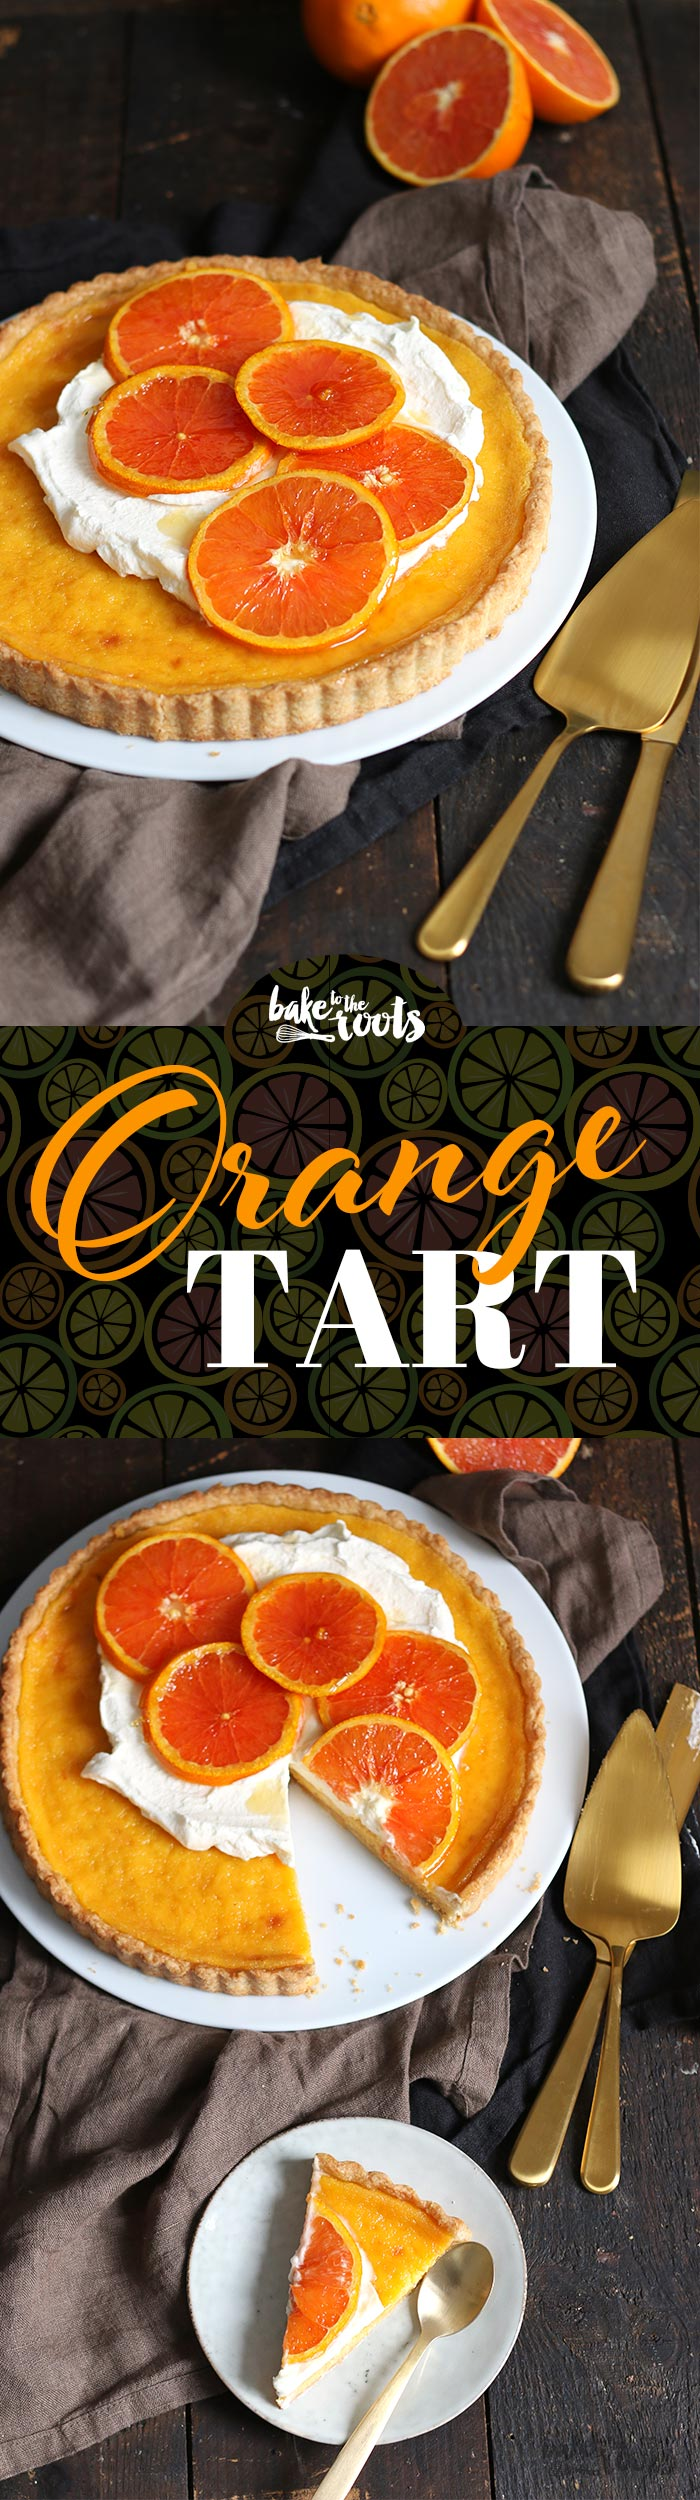 Delicious Orange Tart with Caramelized Oranges | Bake to the roots